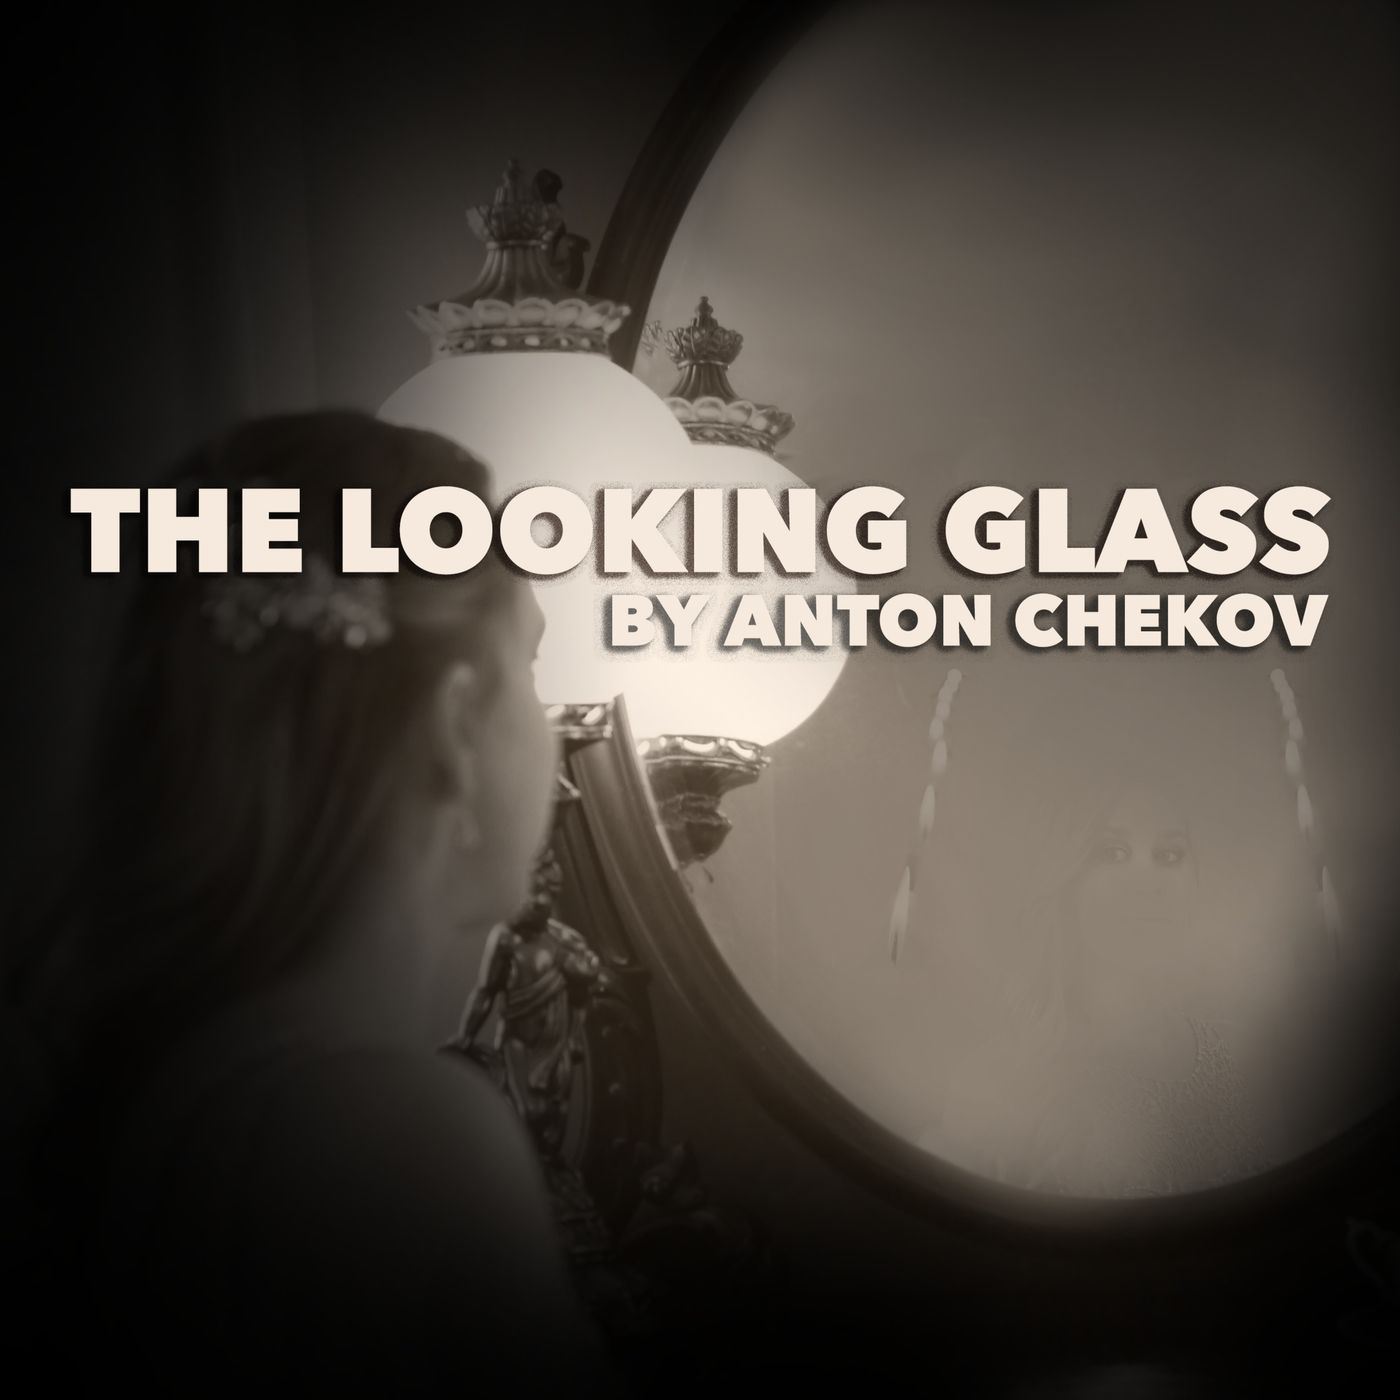 The Looking Glass by Anton Chekov